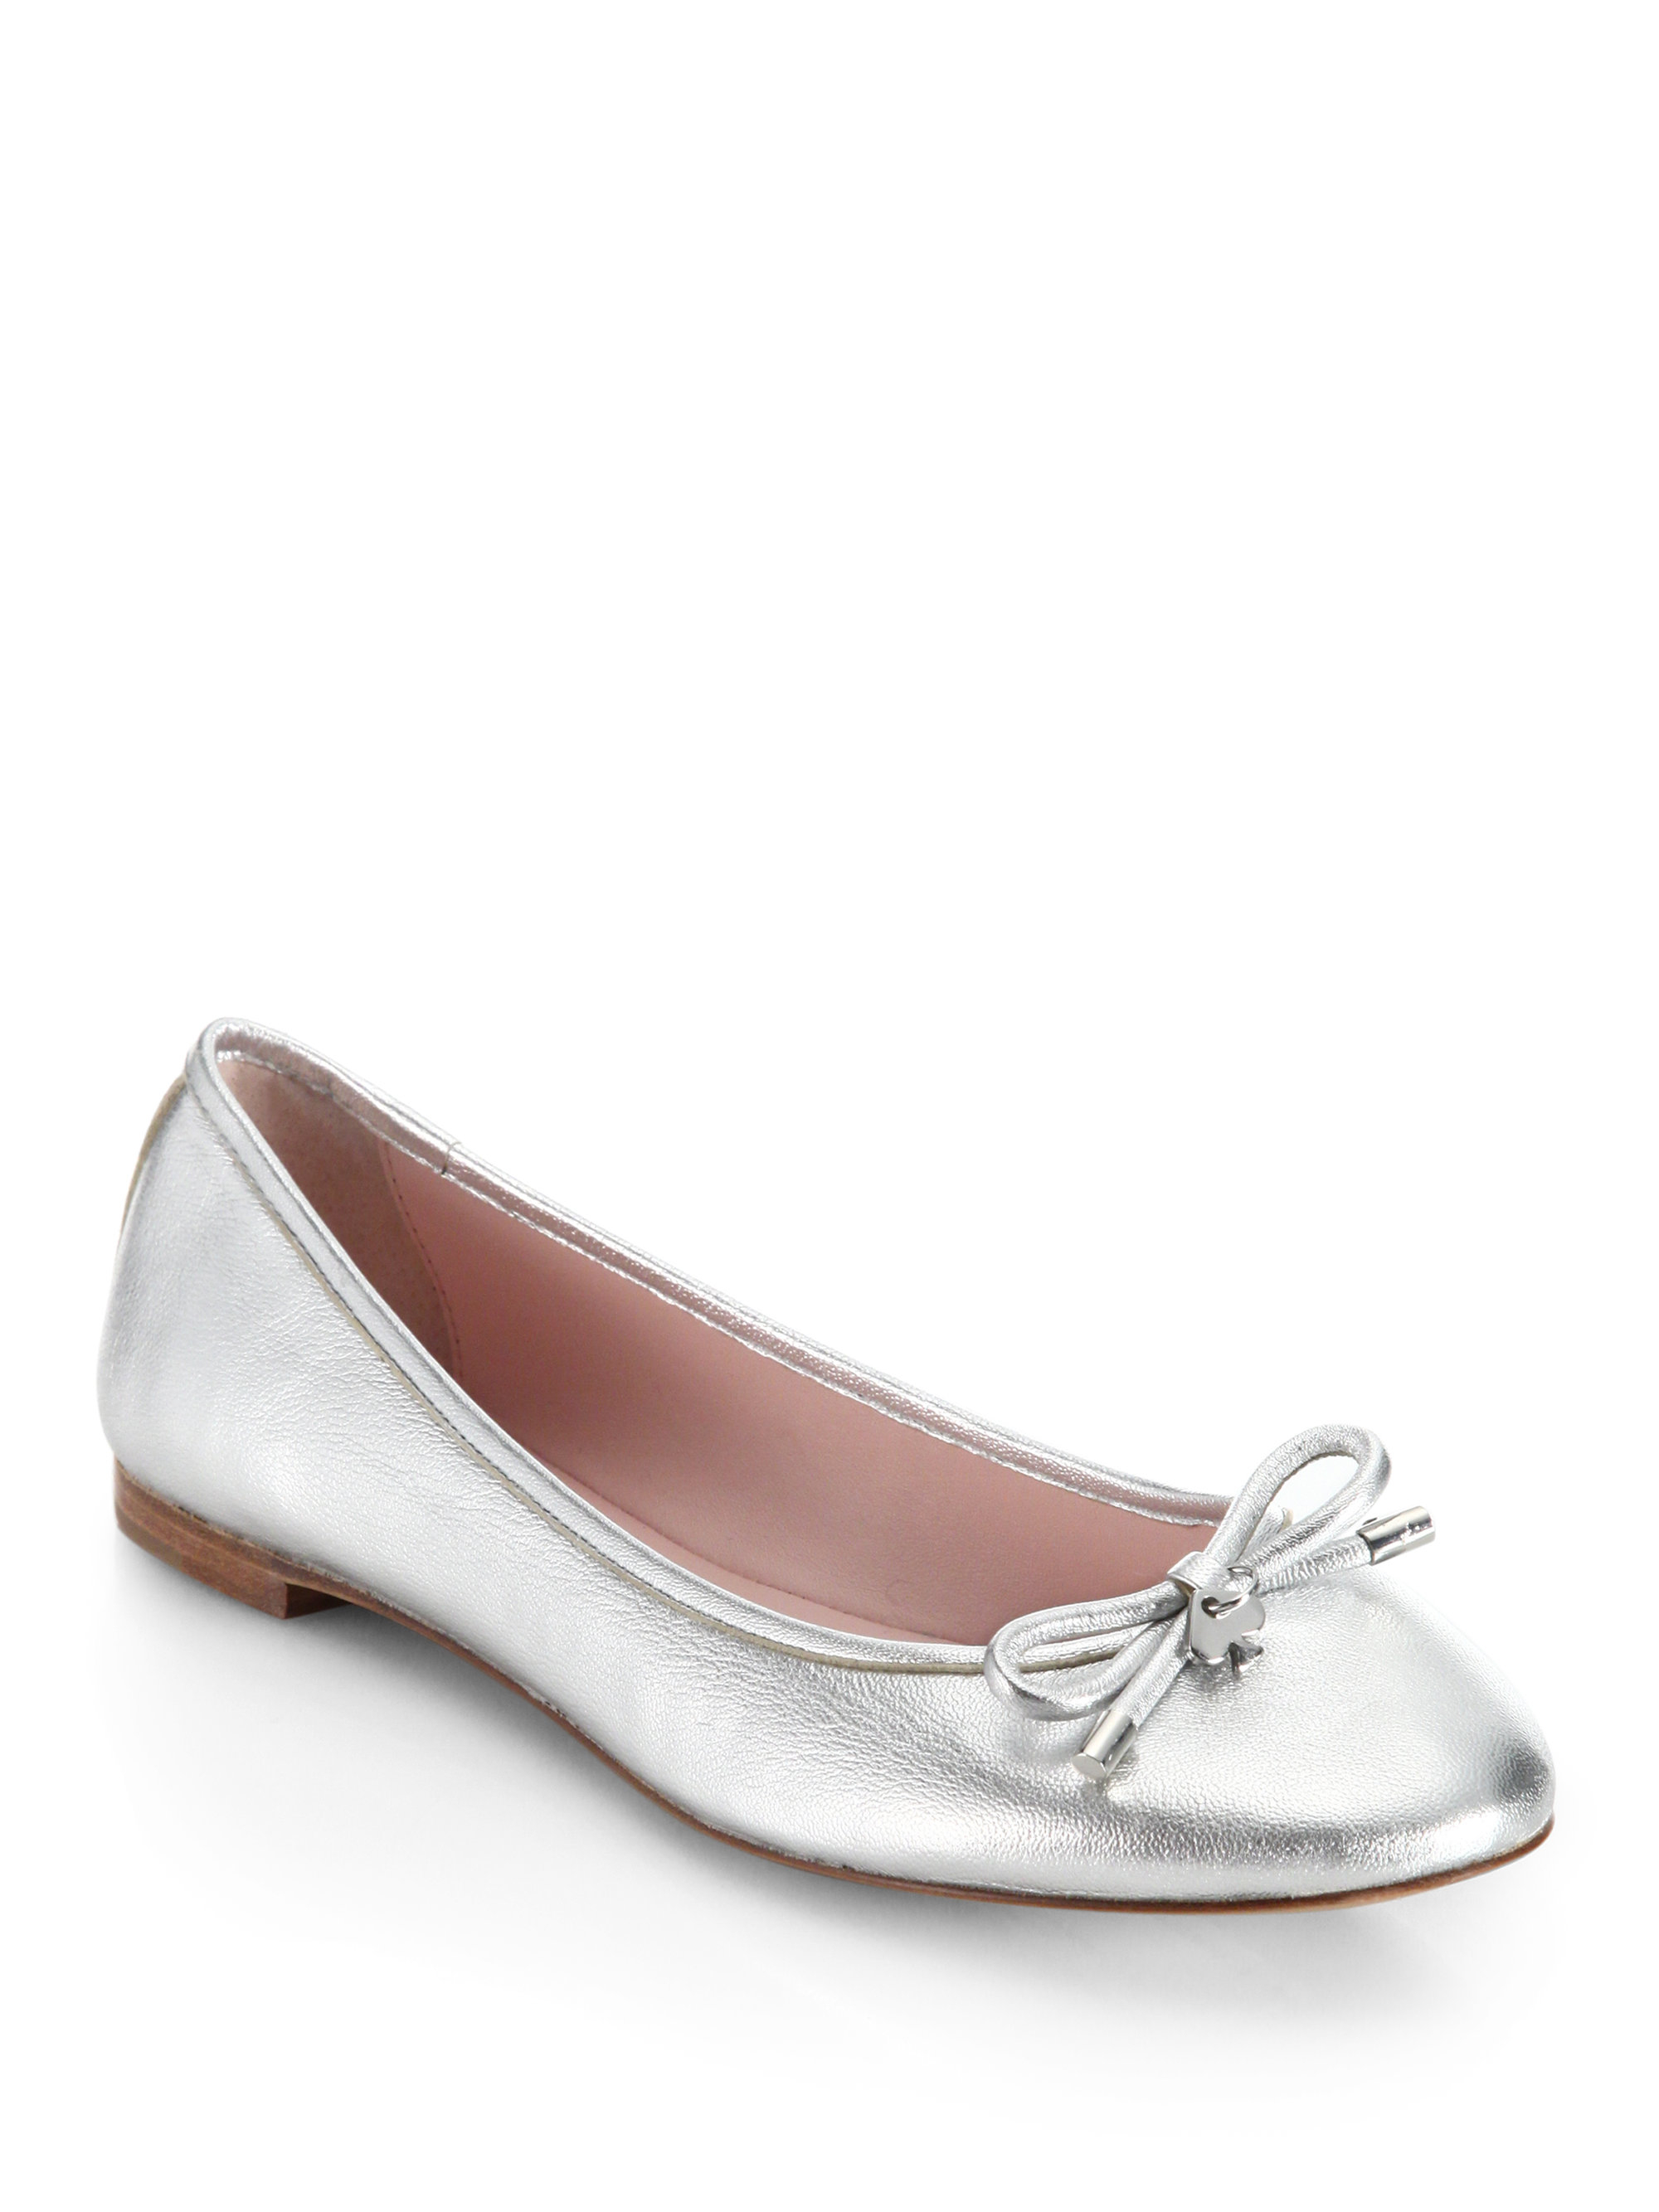 footlocker cheap price free shipping explore Kate Spade New York Leather Embellished Flats sale for sale low price cheap price cheap sale outlet locations cUC9C